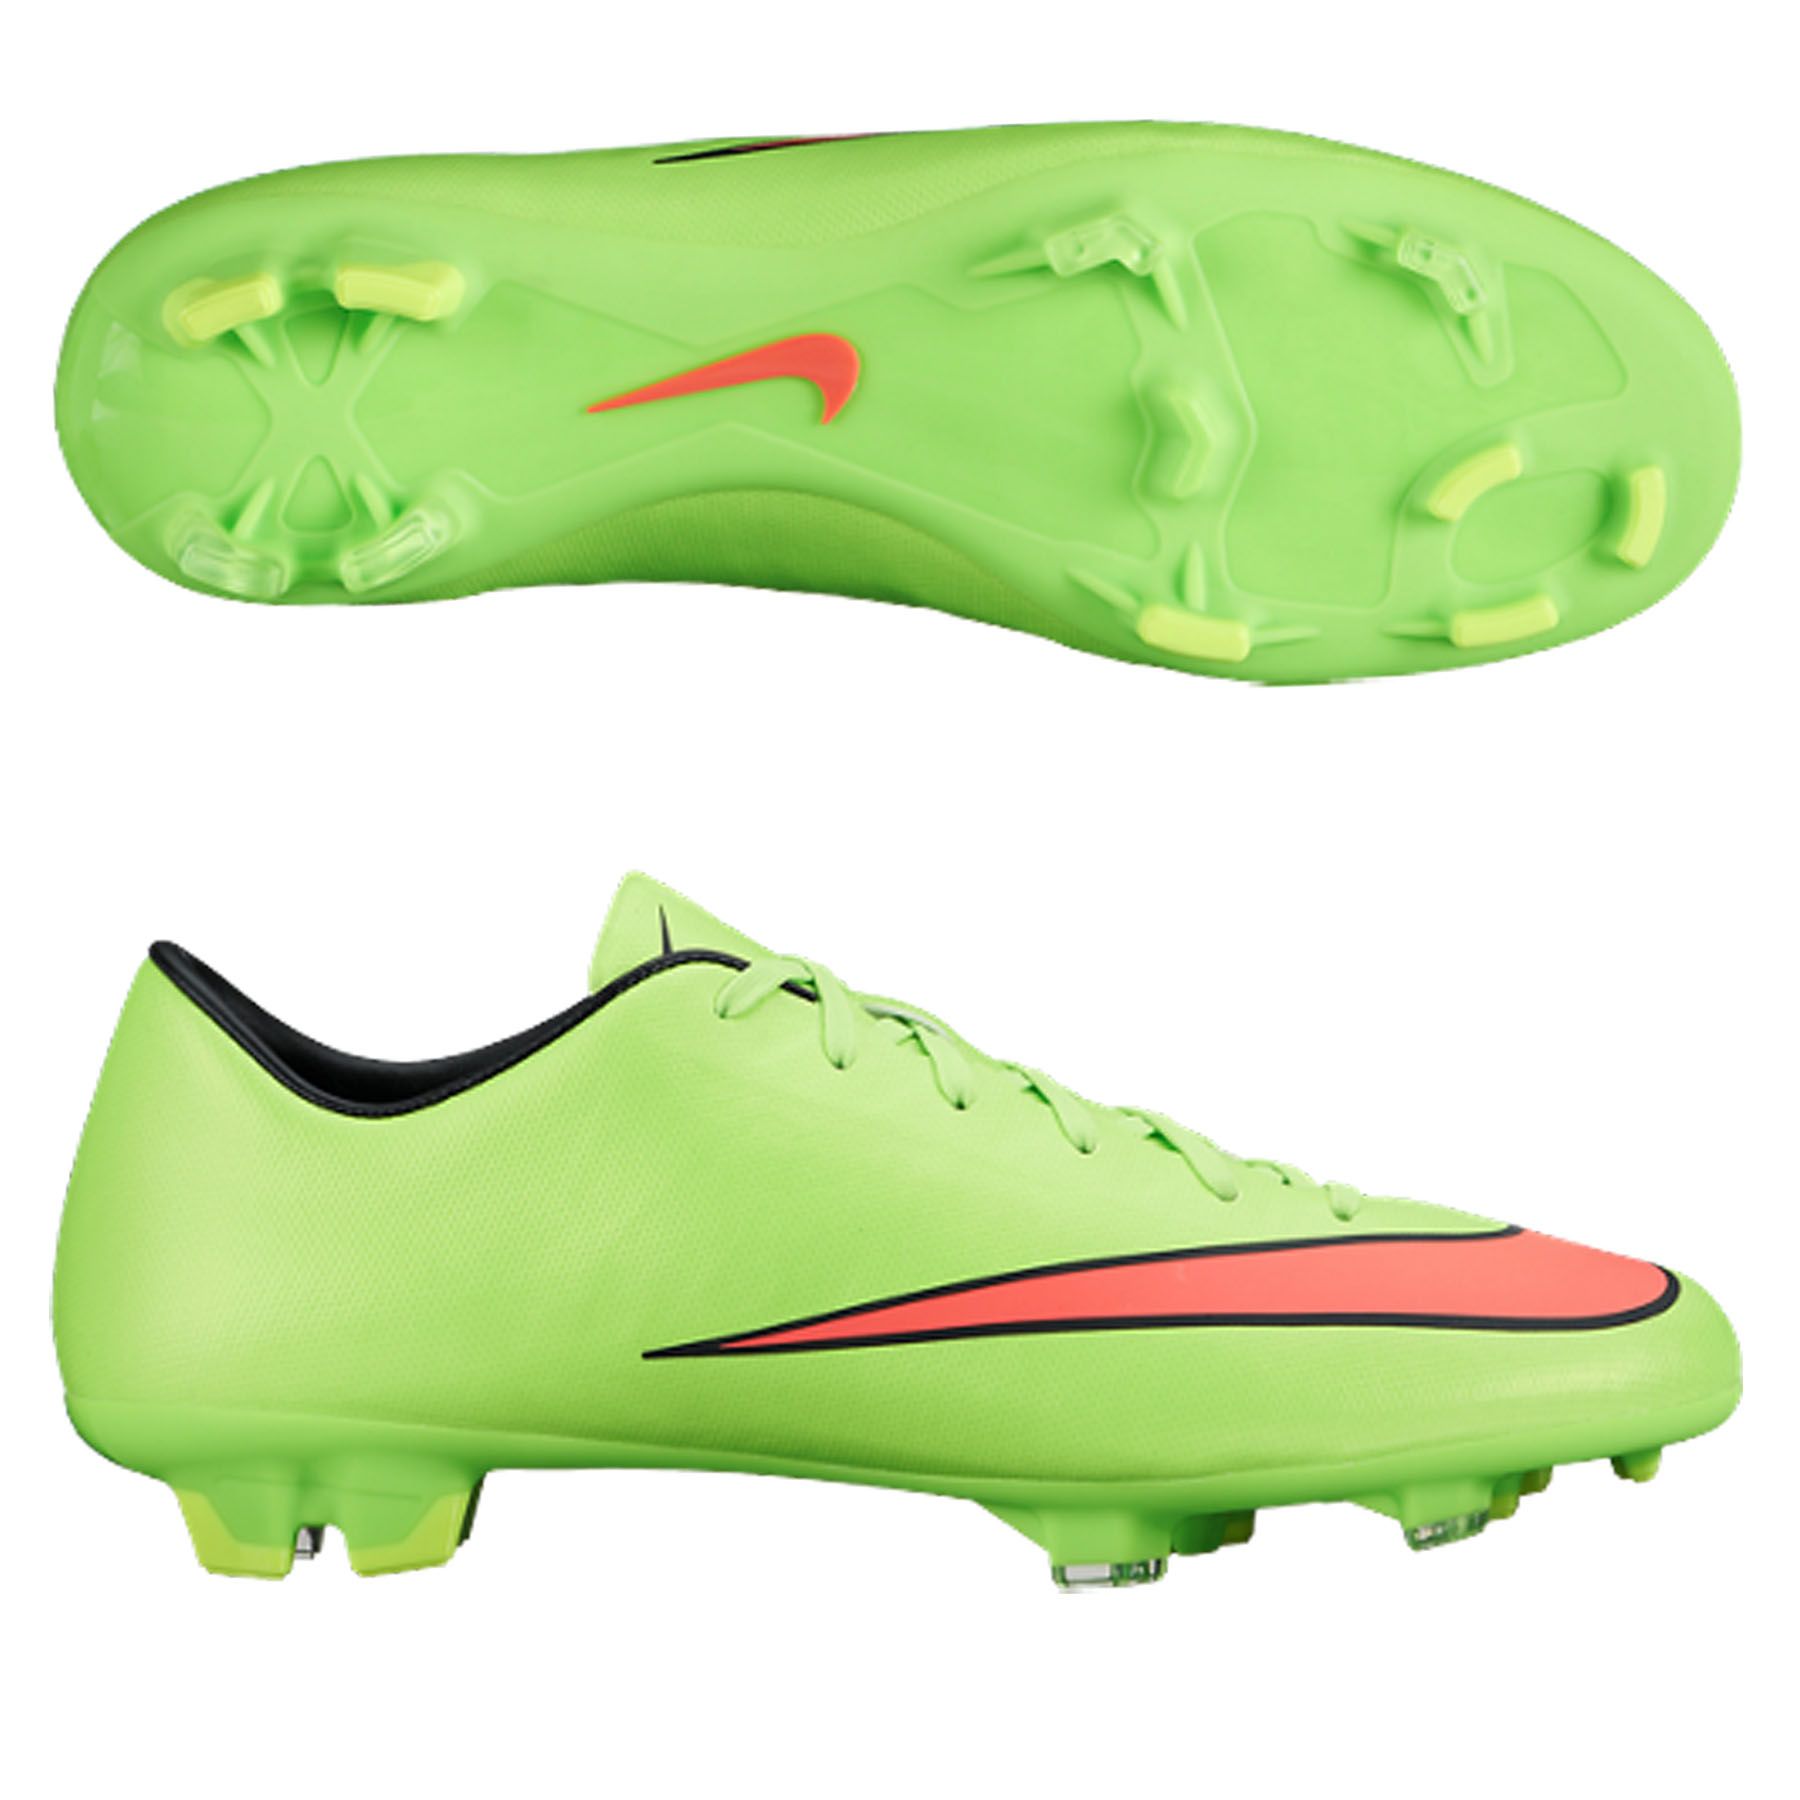 Nike Mercurial Victory V Firm Ground Football Boot Green